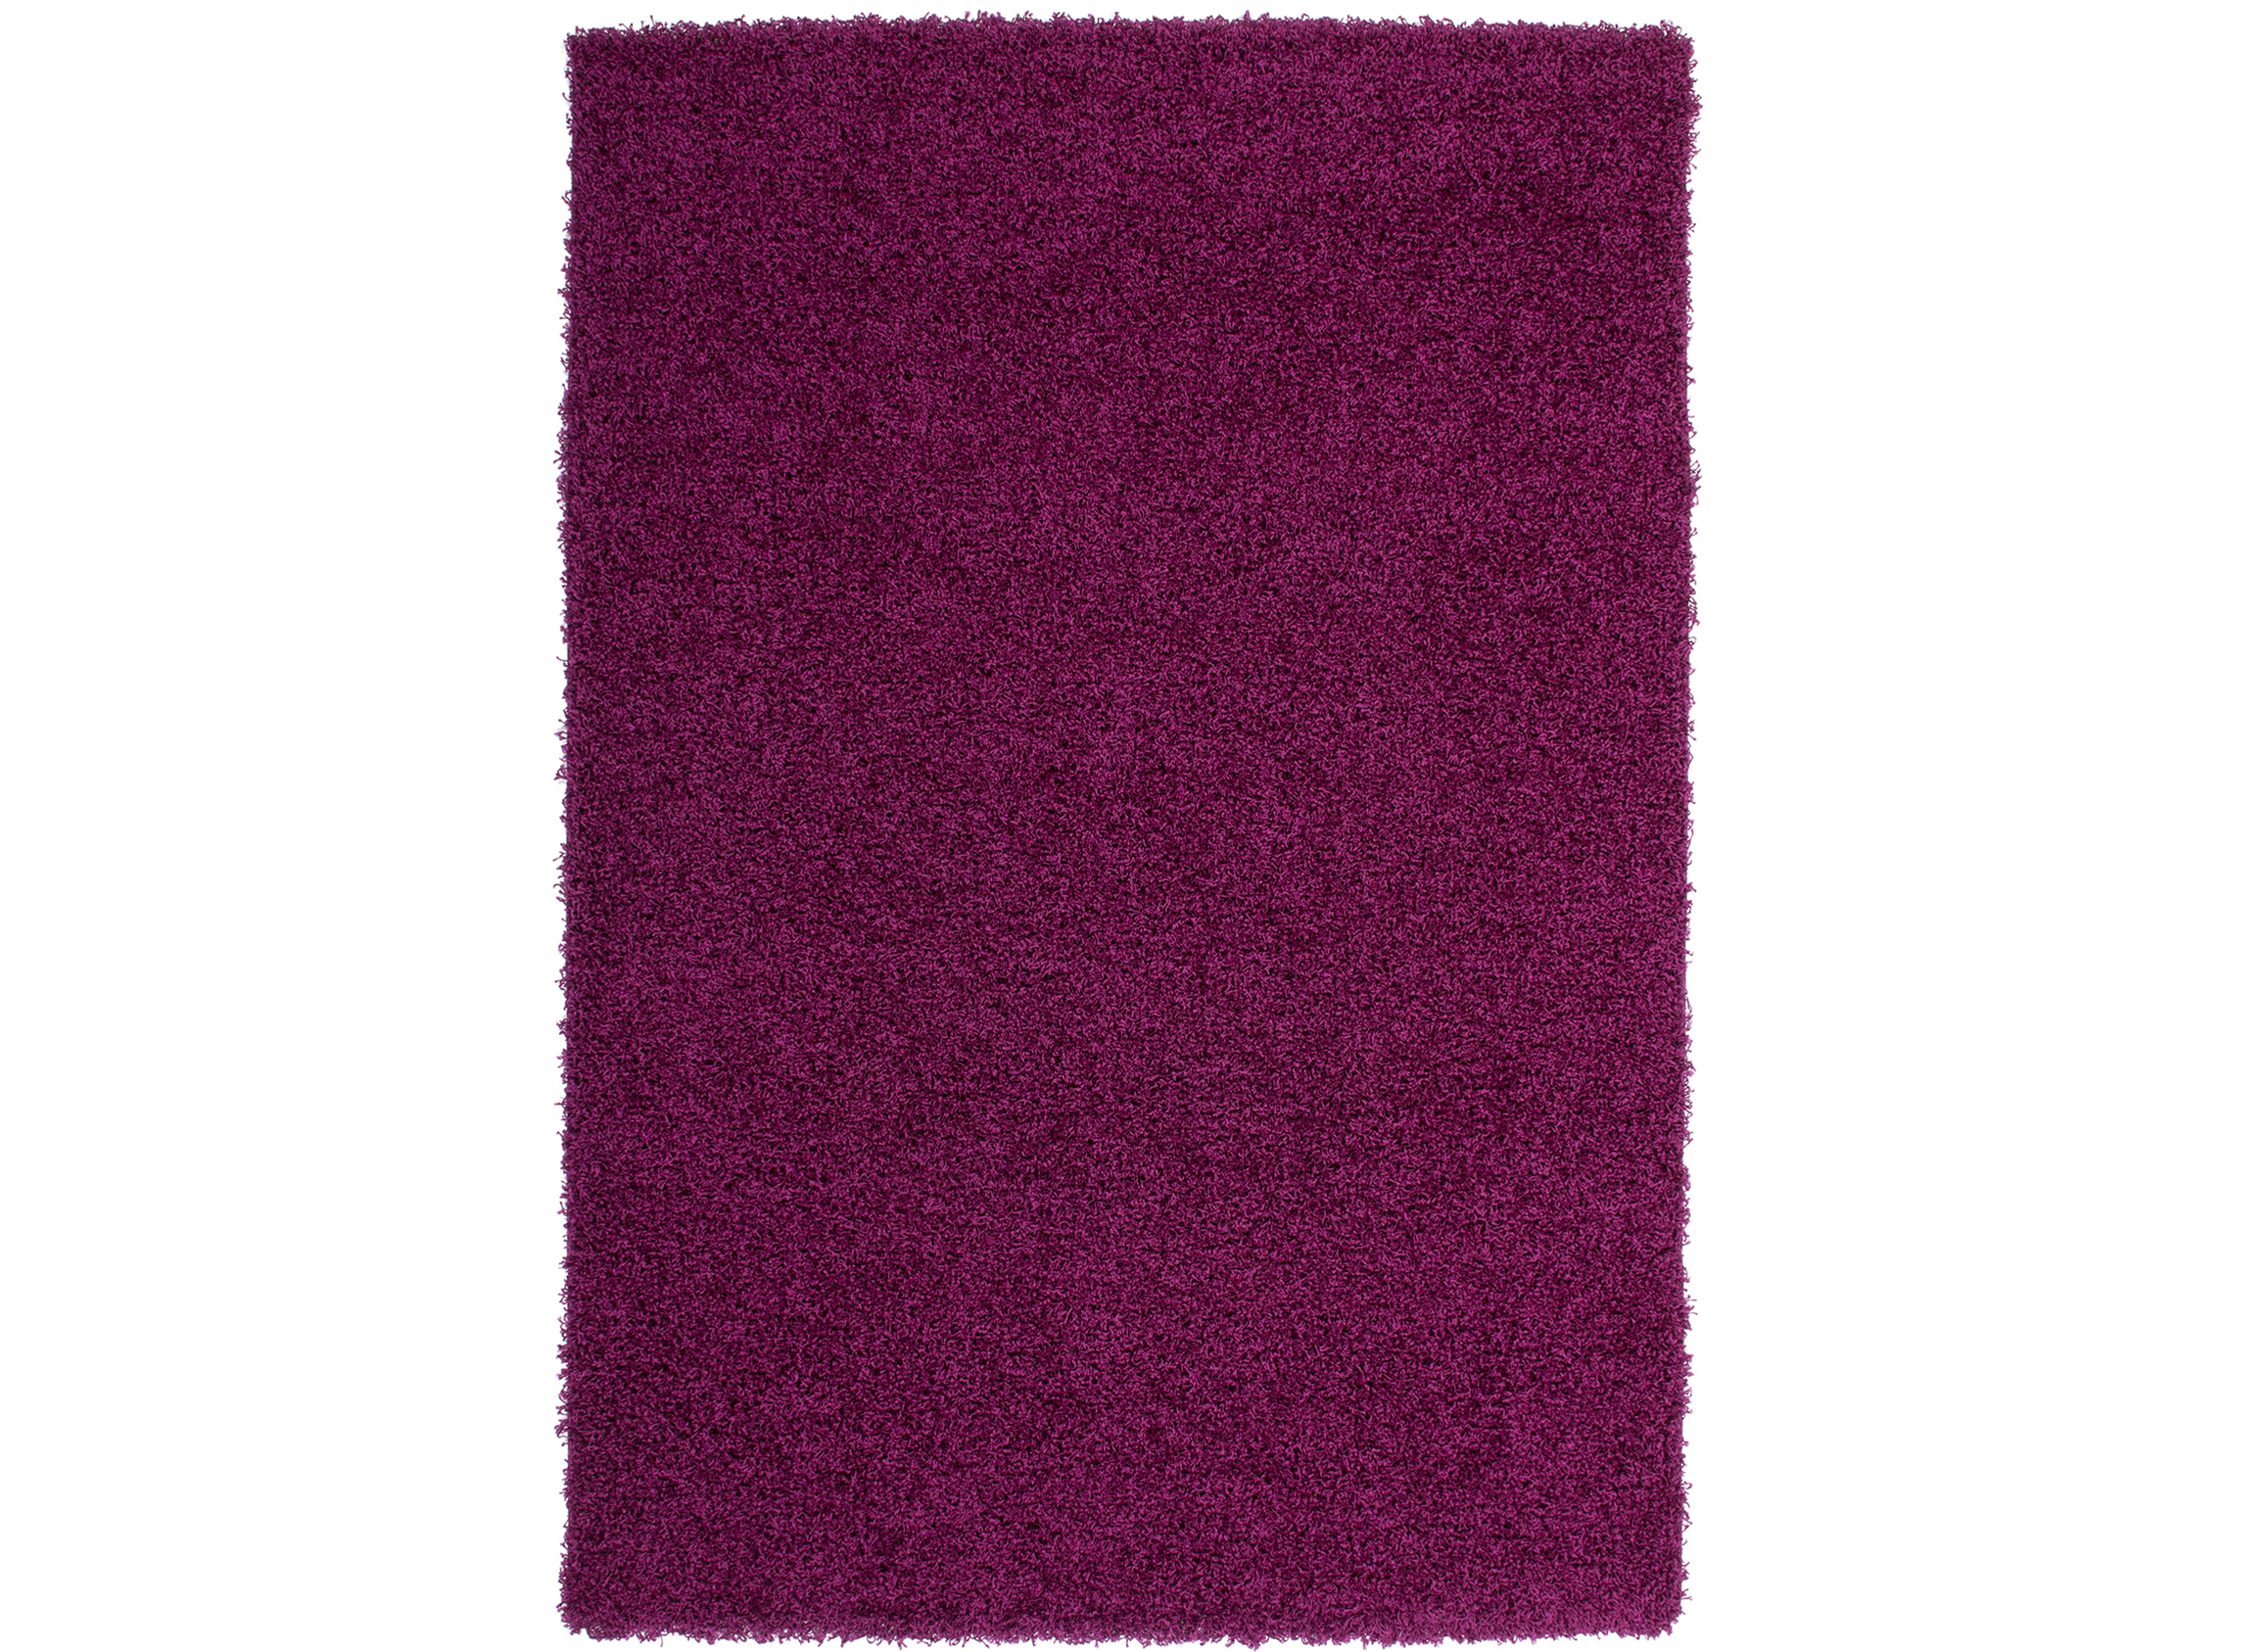 Tapis rond aubergine tapis toodoo rose poudr tapis grande taille with tapis rond aubergine Tapis gris grande taille